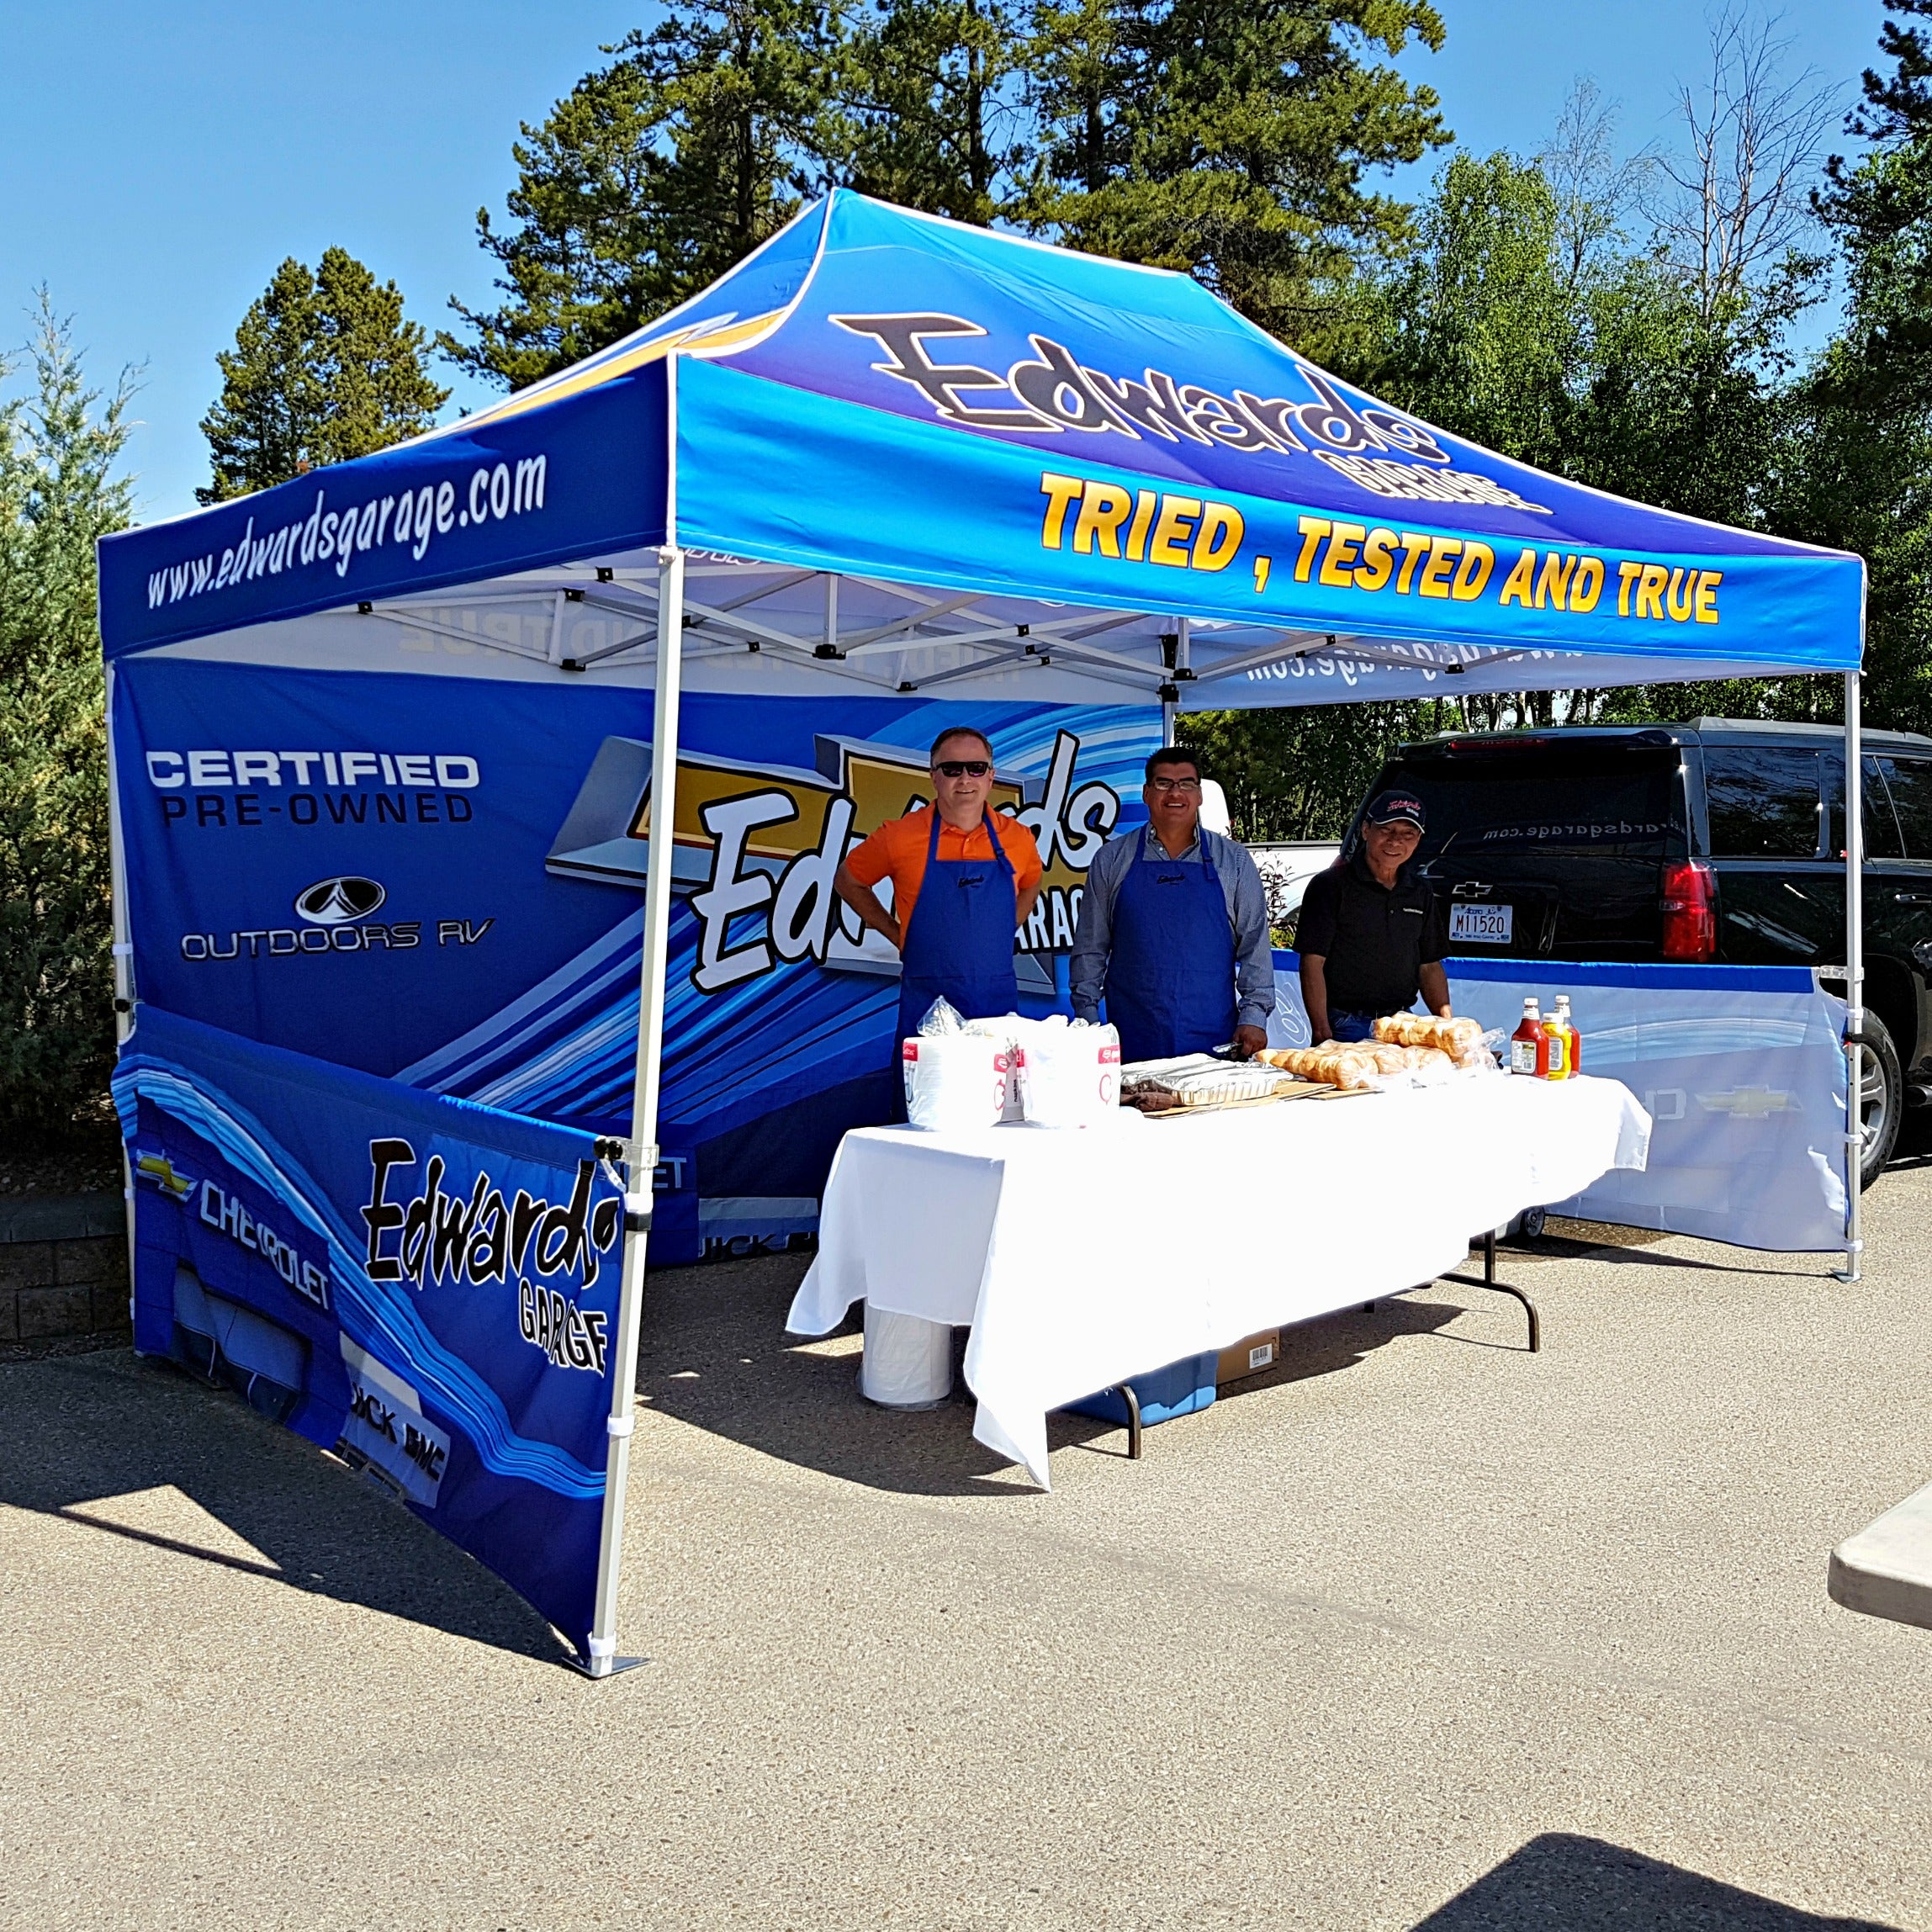 5 Things to Consider before Purchasing a Promotional Pop Up Canopy Tent